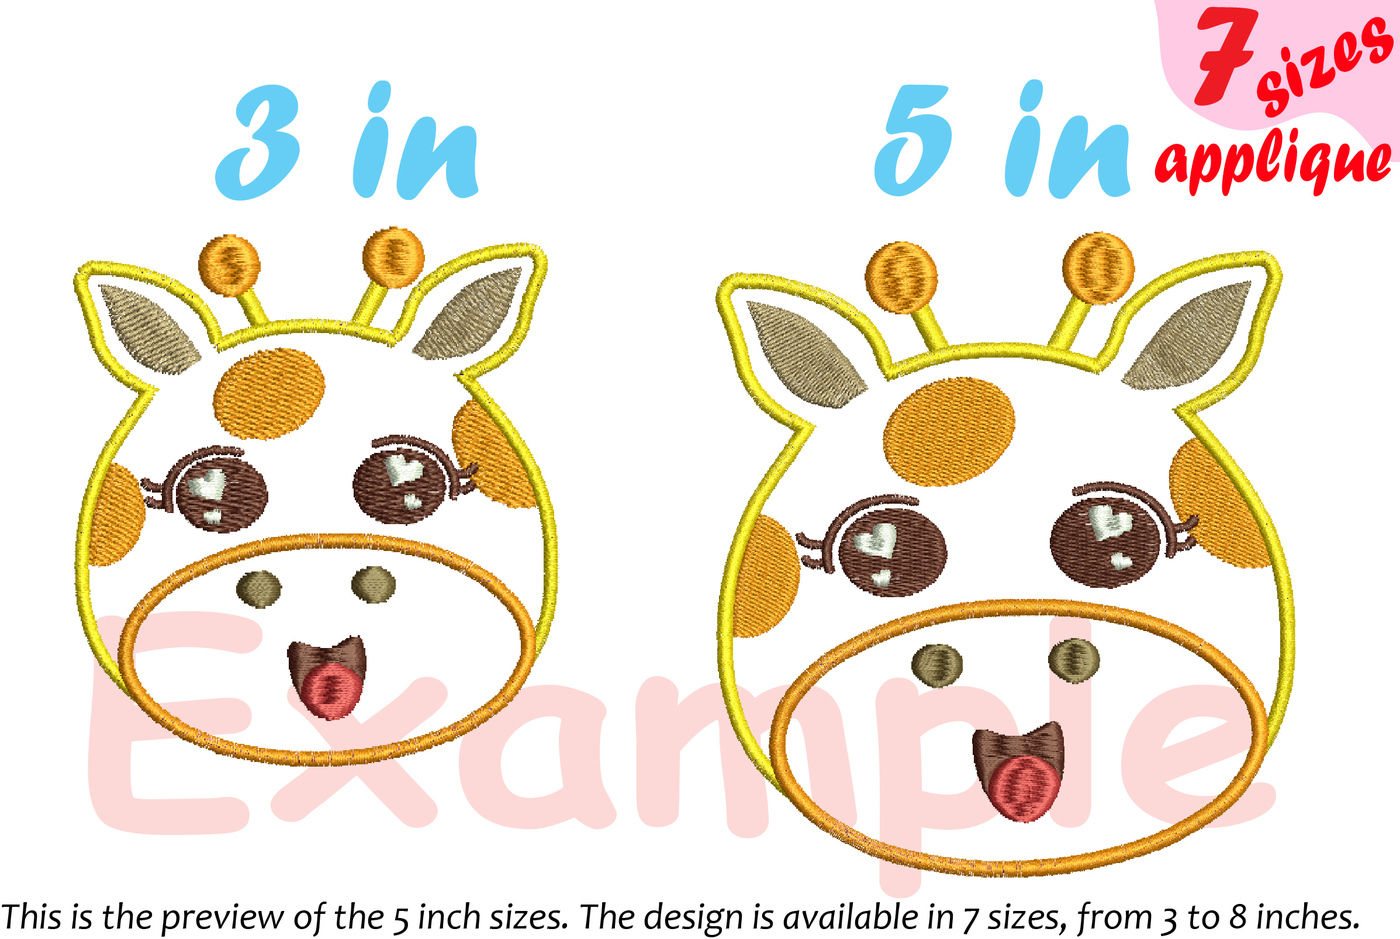 Baby Giraffe Applique Designs For Embroidery Machine Instant